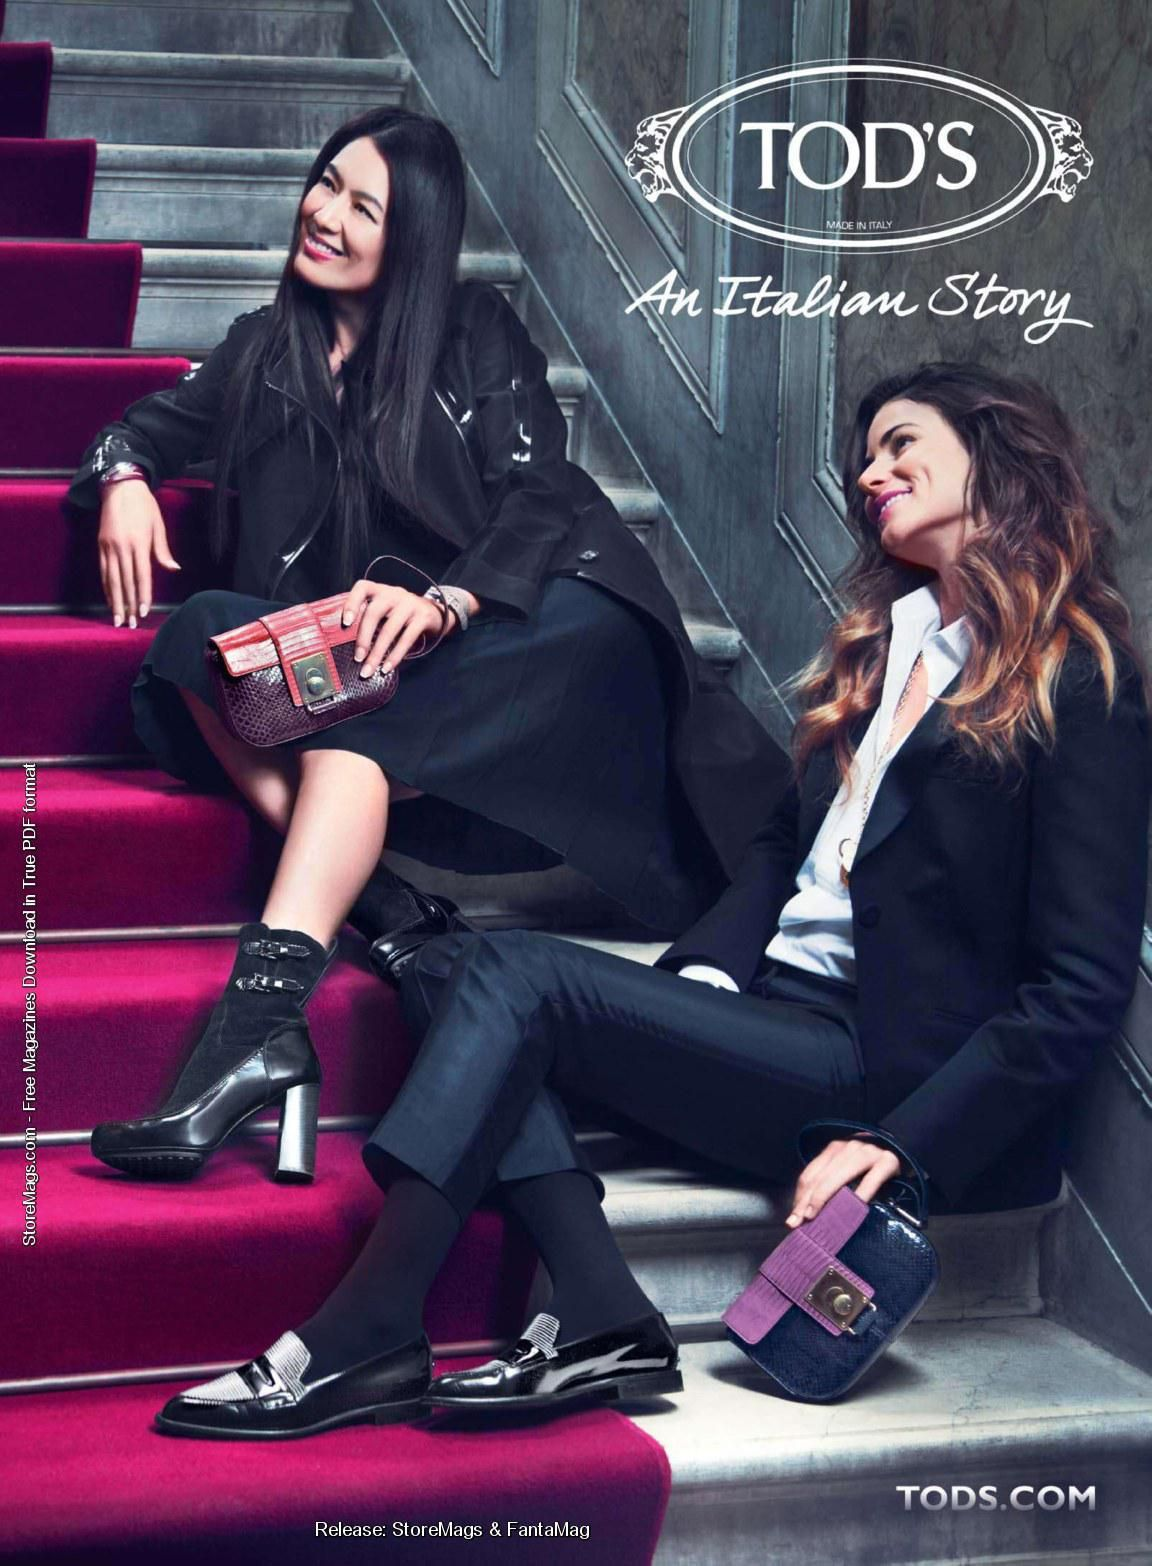 Tod's Fall Winter 2011 Ad Campaign Preview